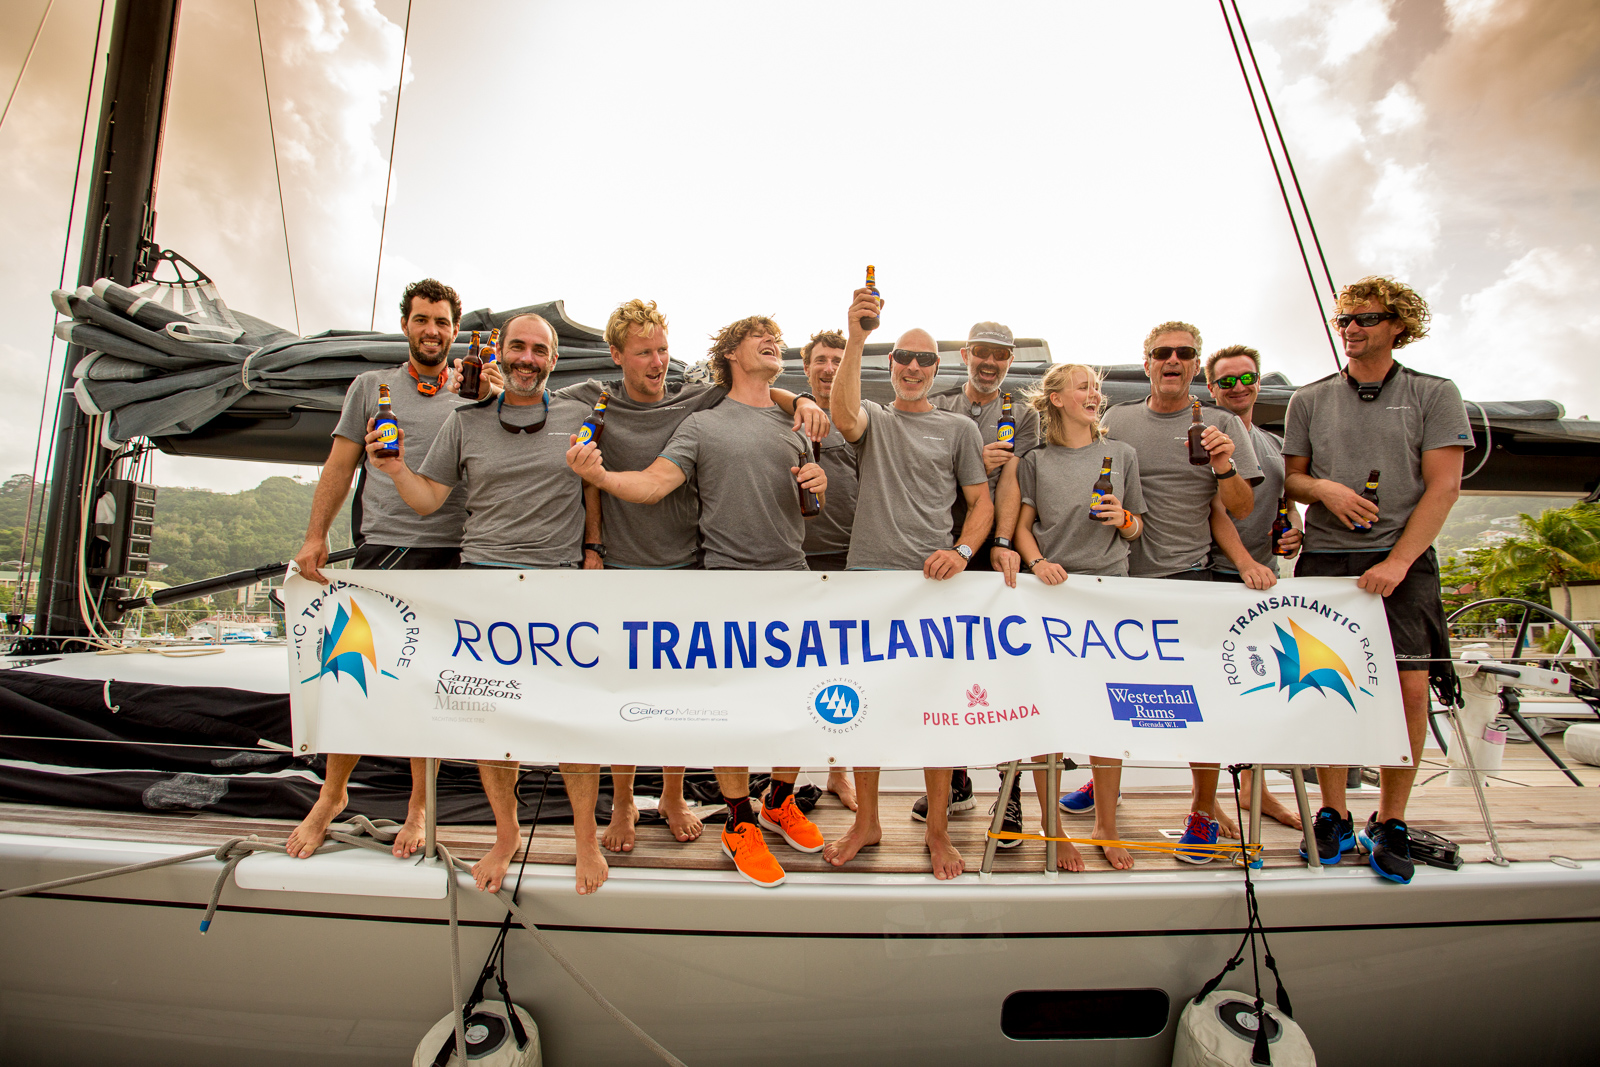 Three cheers and a warm welcome dockside for Aragon who finished the RORC Transatlantic race in Port Louis. After IRC time correction, the Dutch Maxi is leading the race for the RORC Transatlantic Race Trophy © RORC/Arthur Daniel